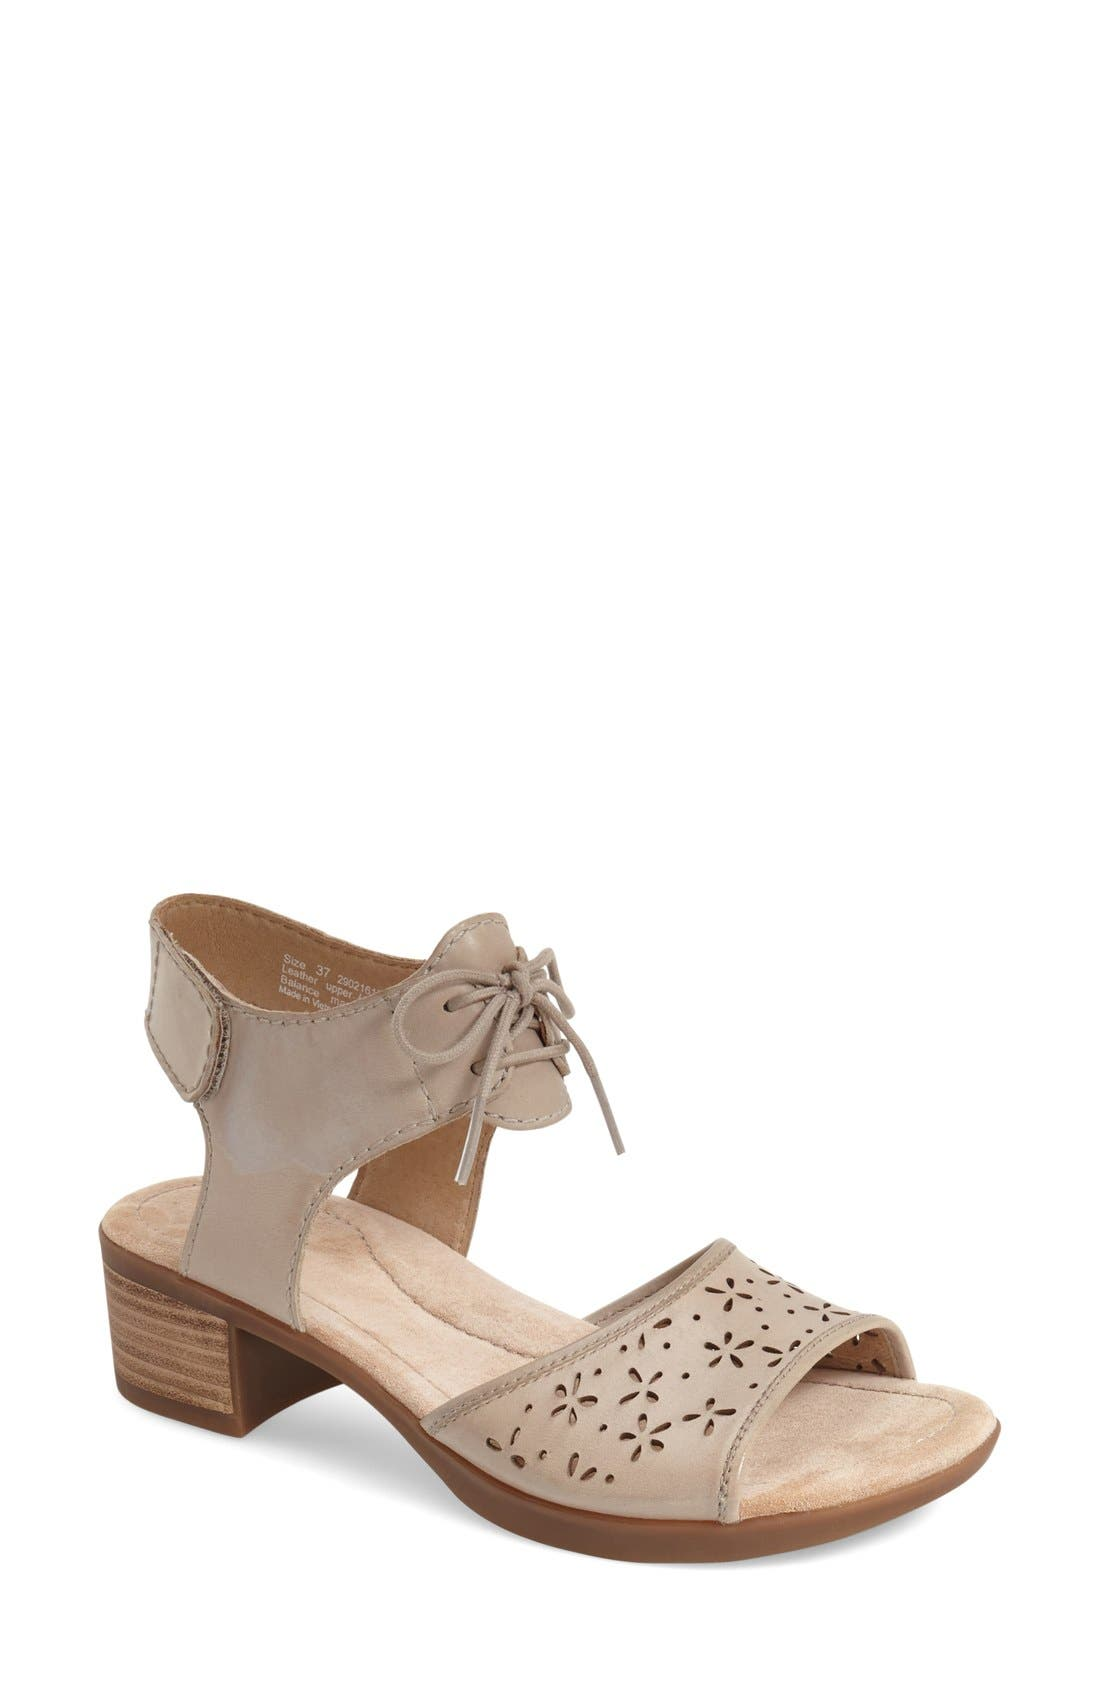 'Liz' Lace-Up Block Heel Sandal,                             Main thumbnail 1, color,                             270